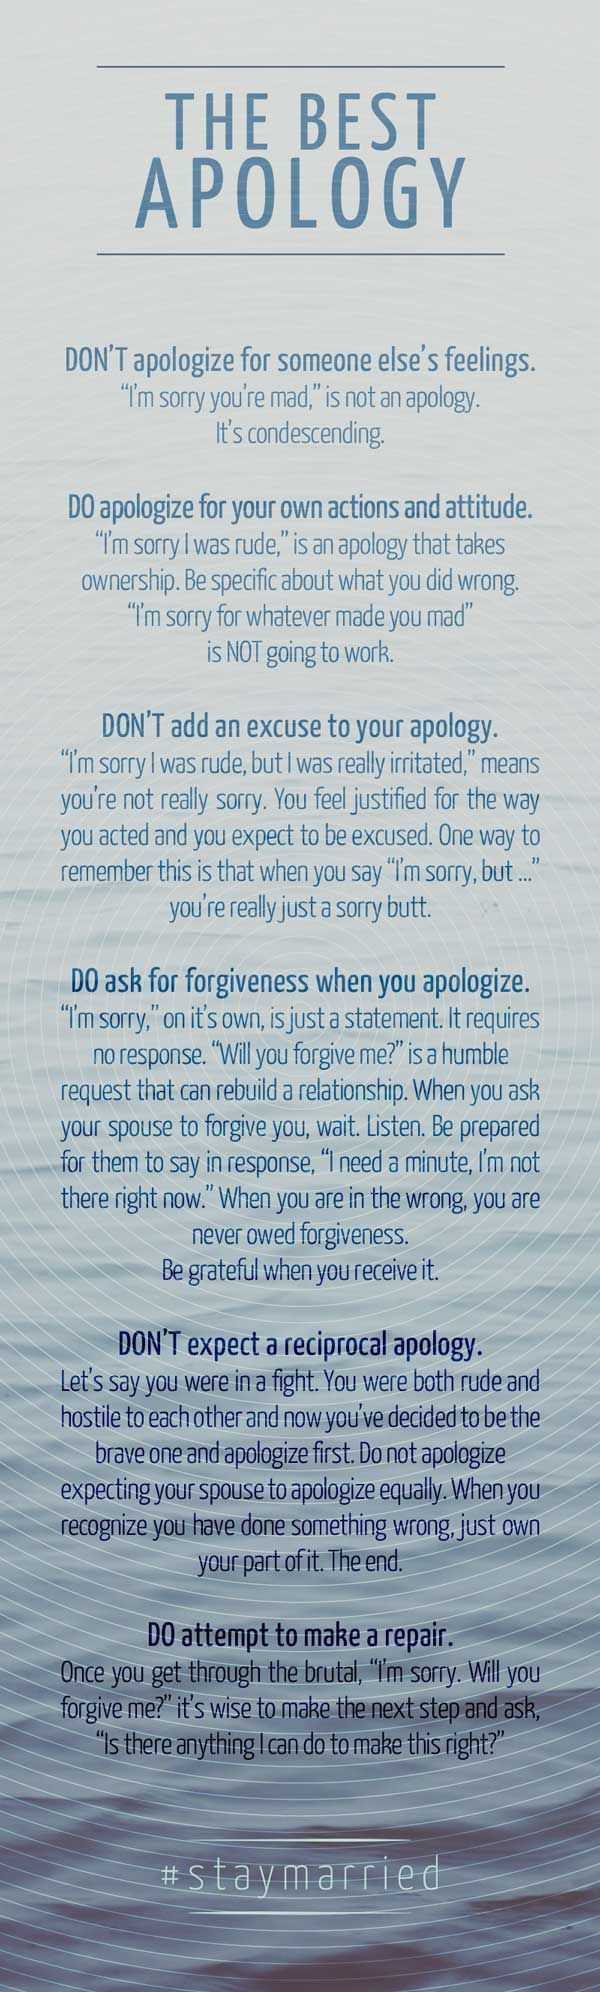 The Best Apology – How to say sorry like you mean it. #staymarried